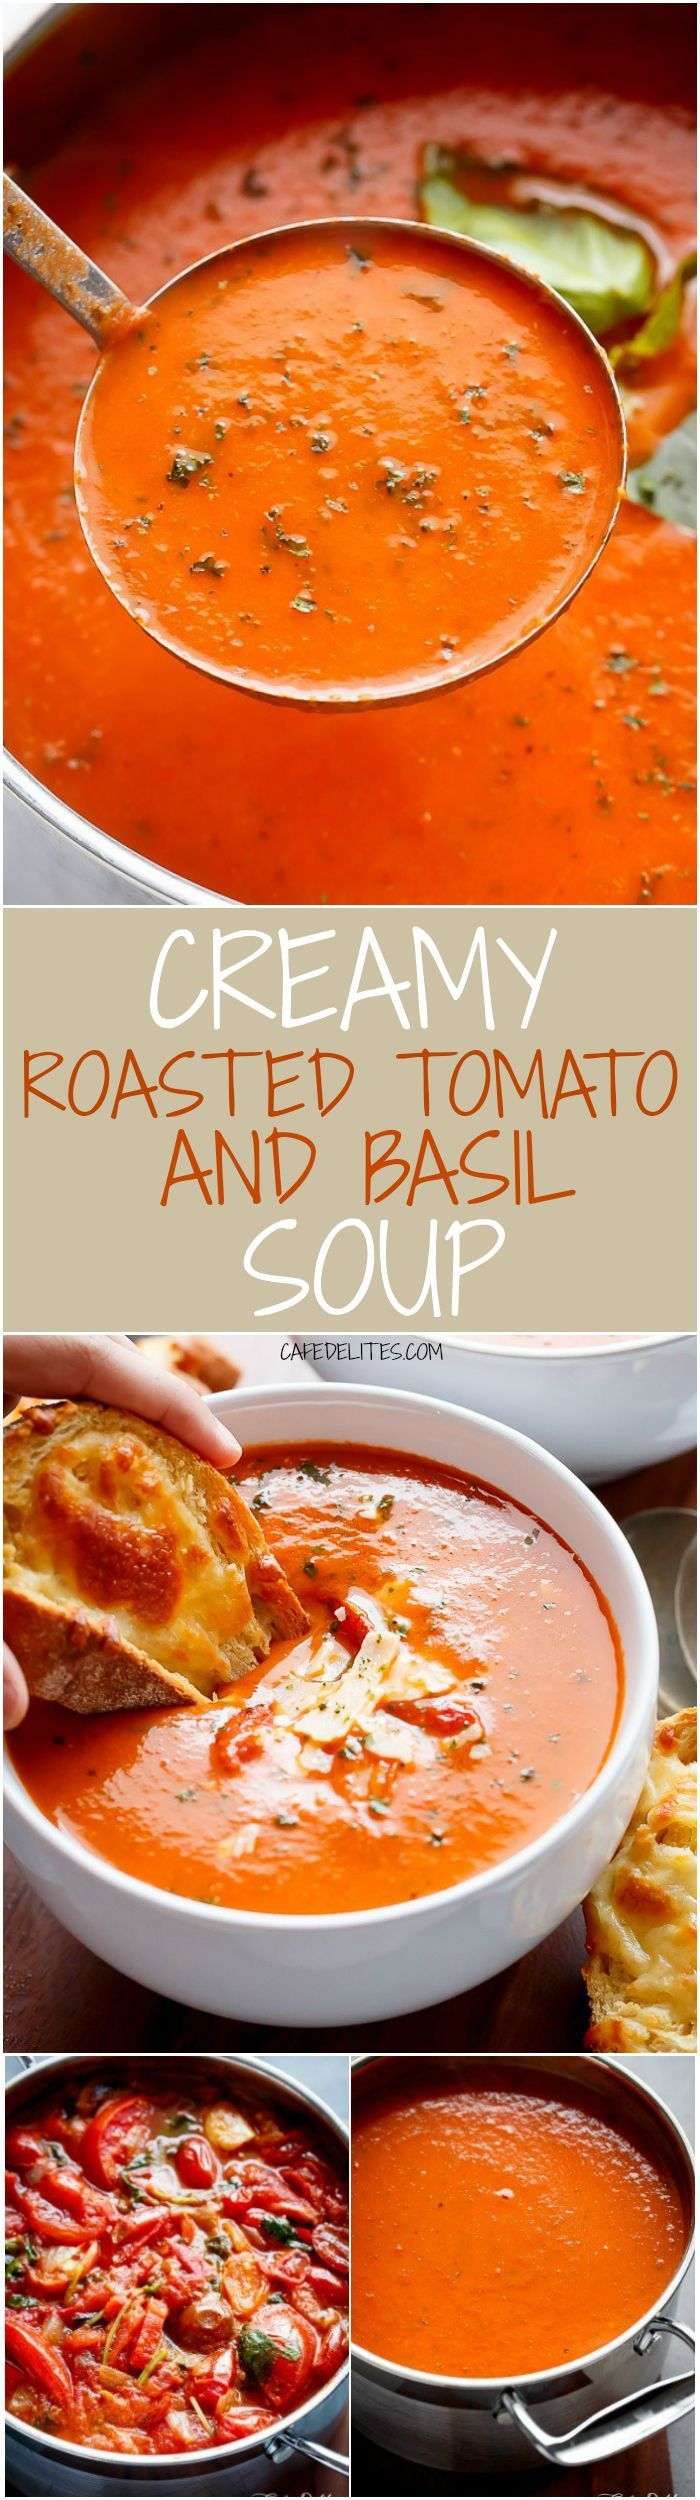 A Creamy Roasted Tomato Basil Soup full of incredible flavours, naturally thickened with no need for cream cheese or heavy creams! |